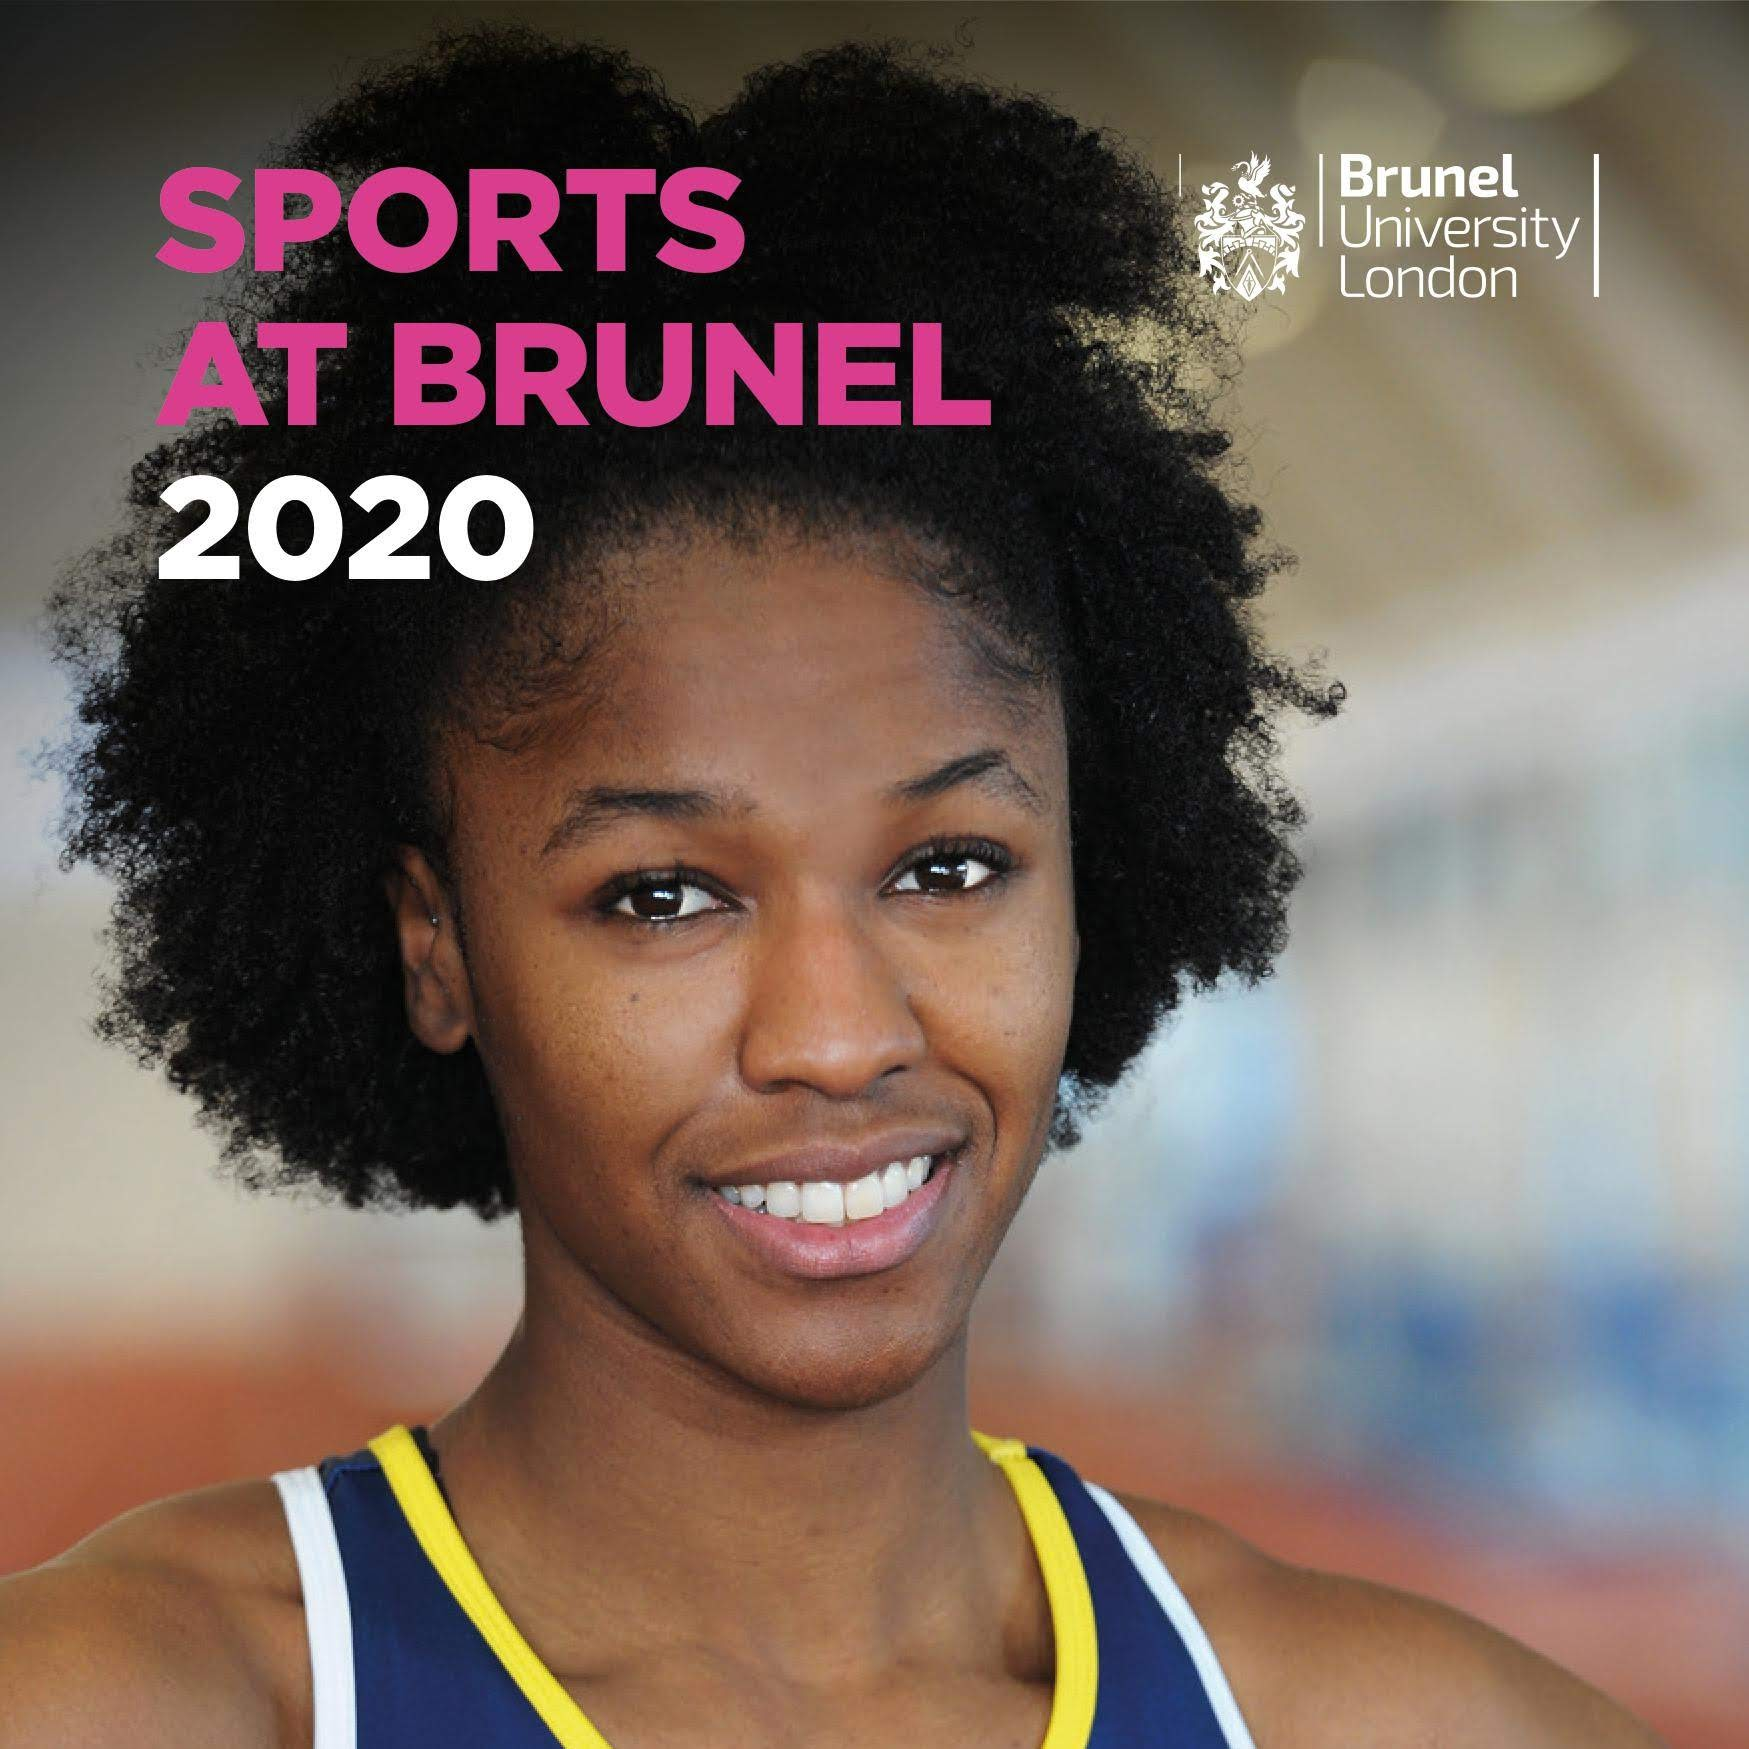 Guide to sport cover 2020